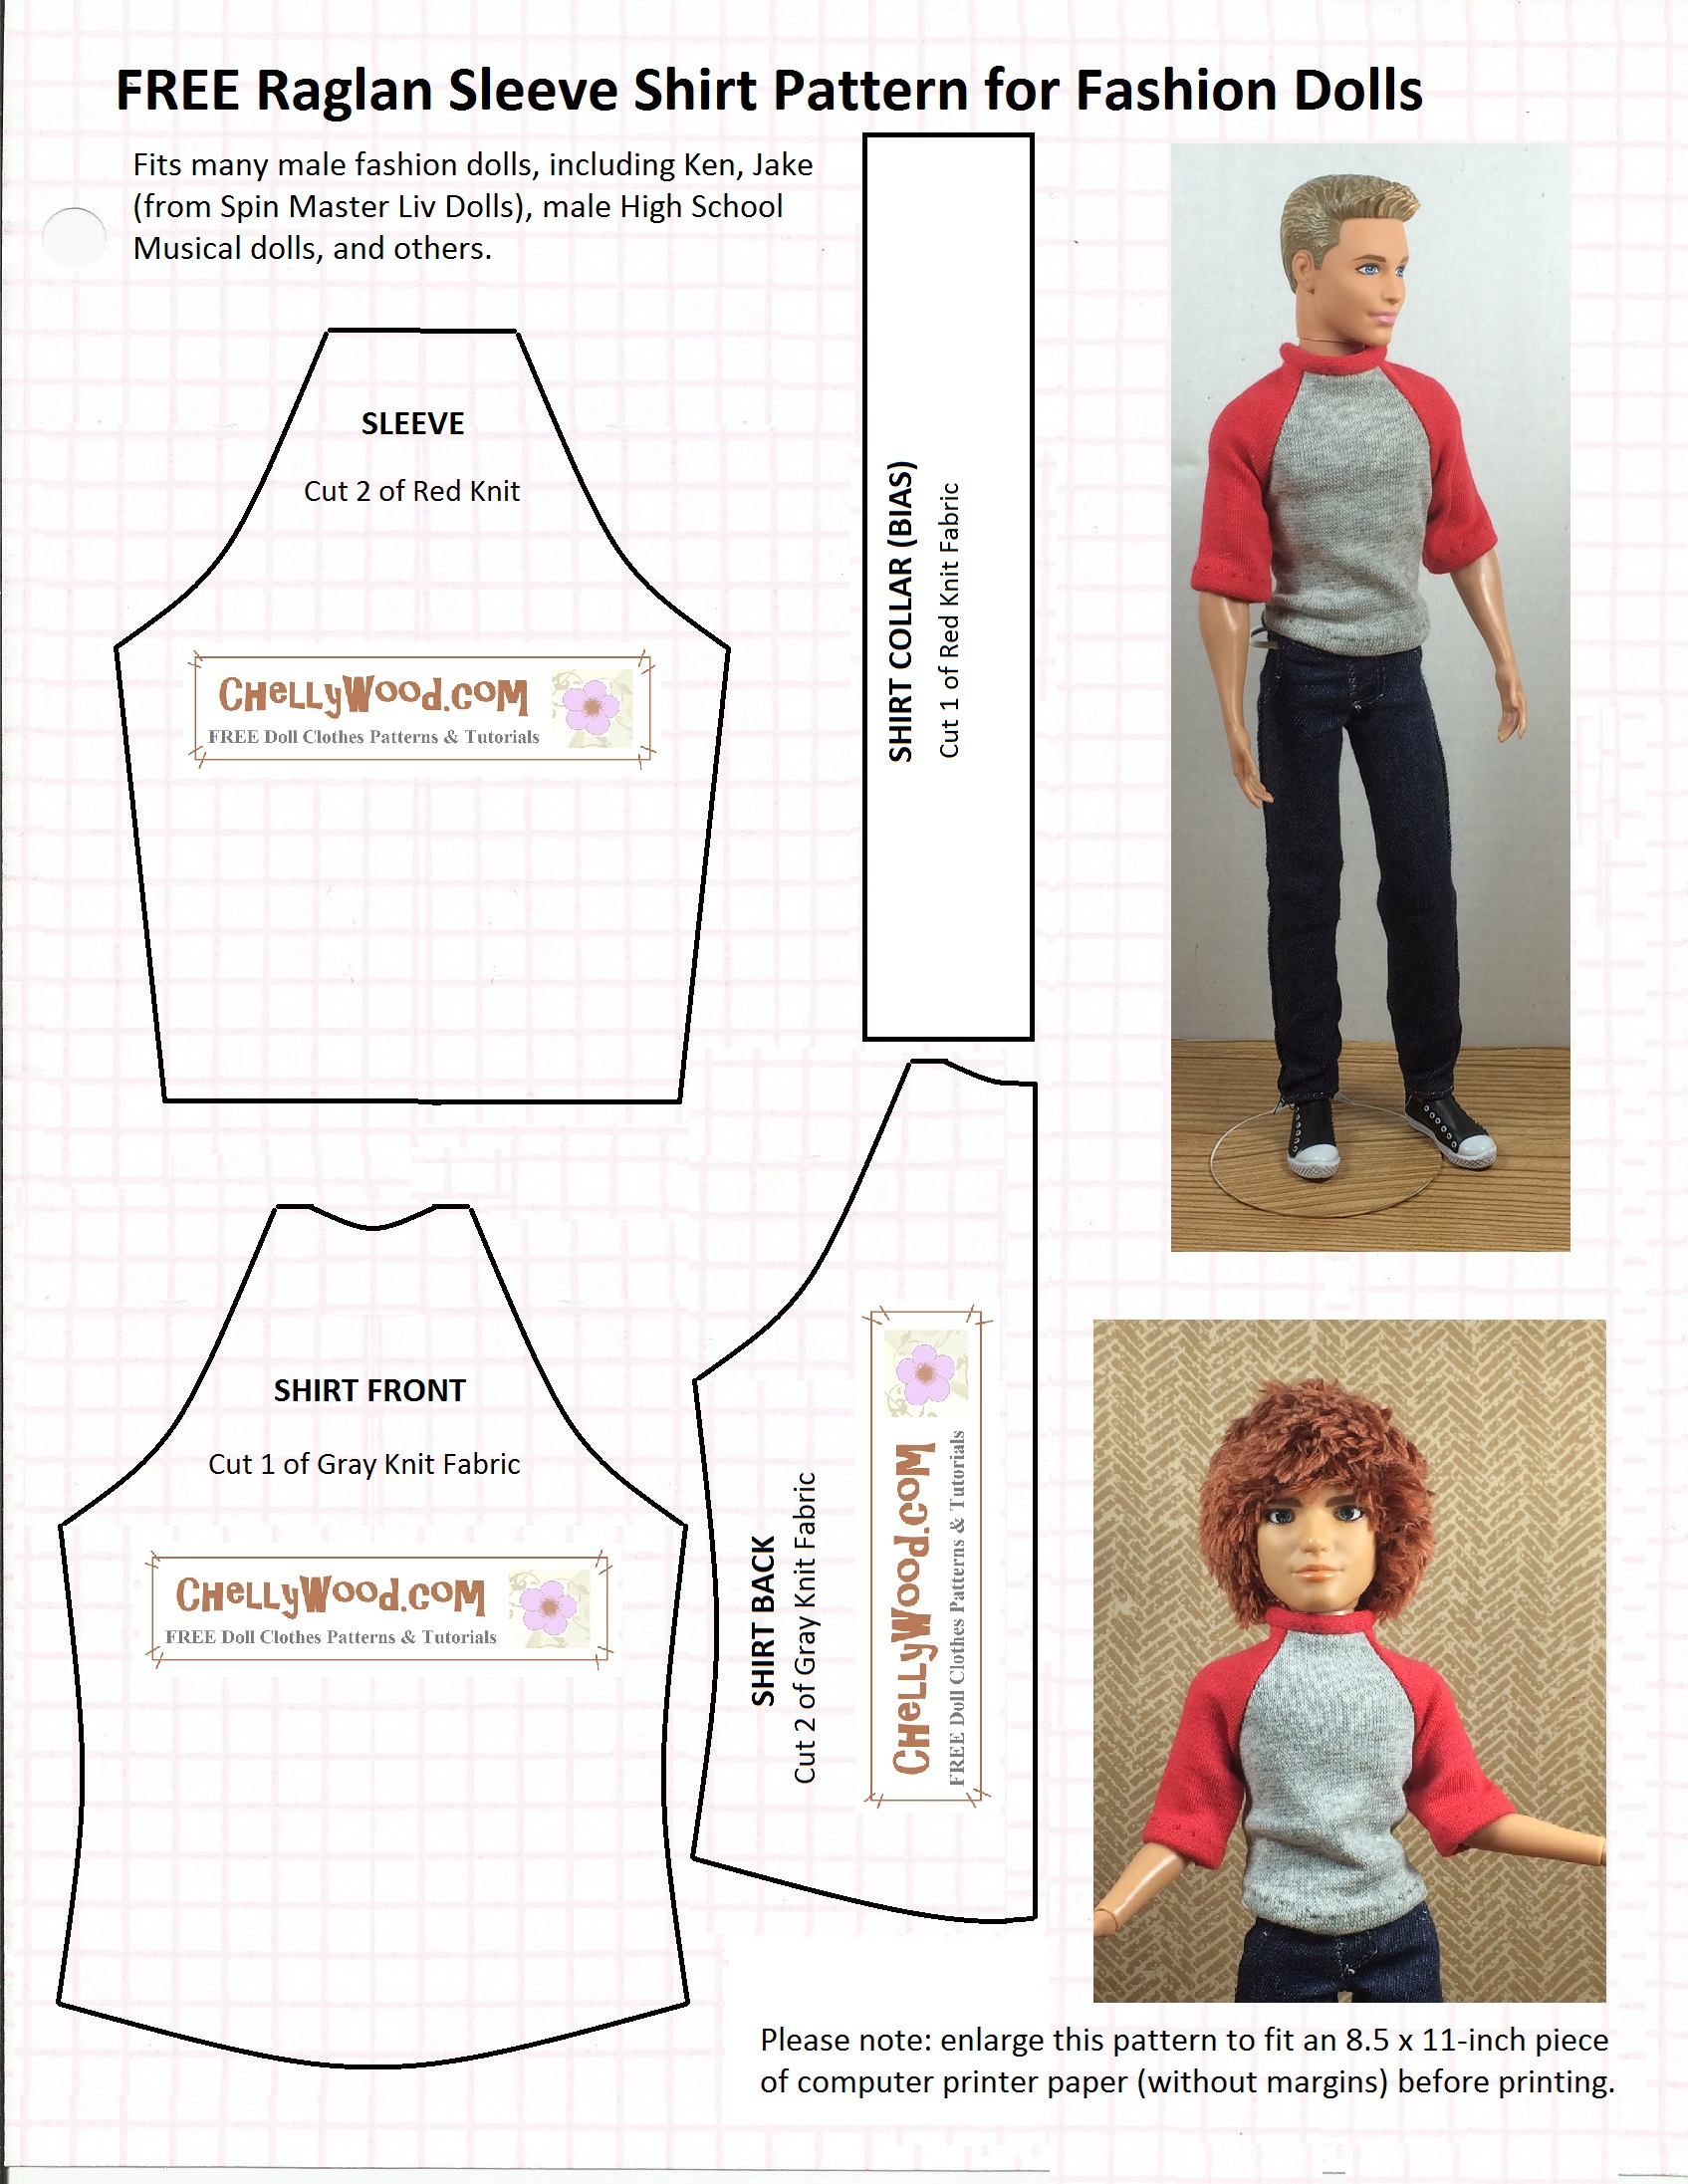 Old pattern page chelly wood tutorial for making a tie for fashion dolls raglan sleeved shirt pattern raglan jeuxipadfo Image collections